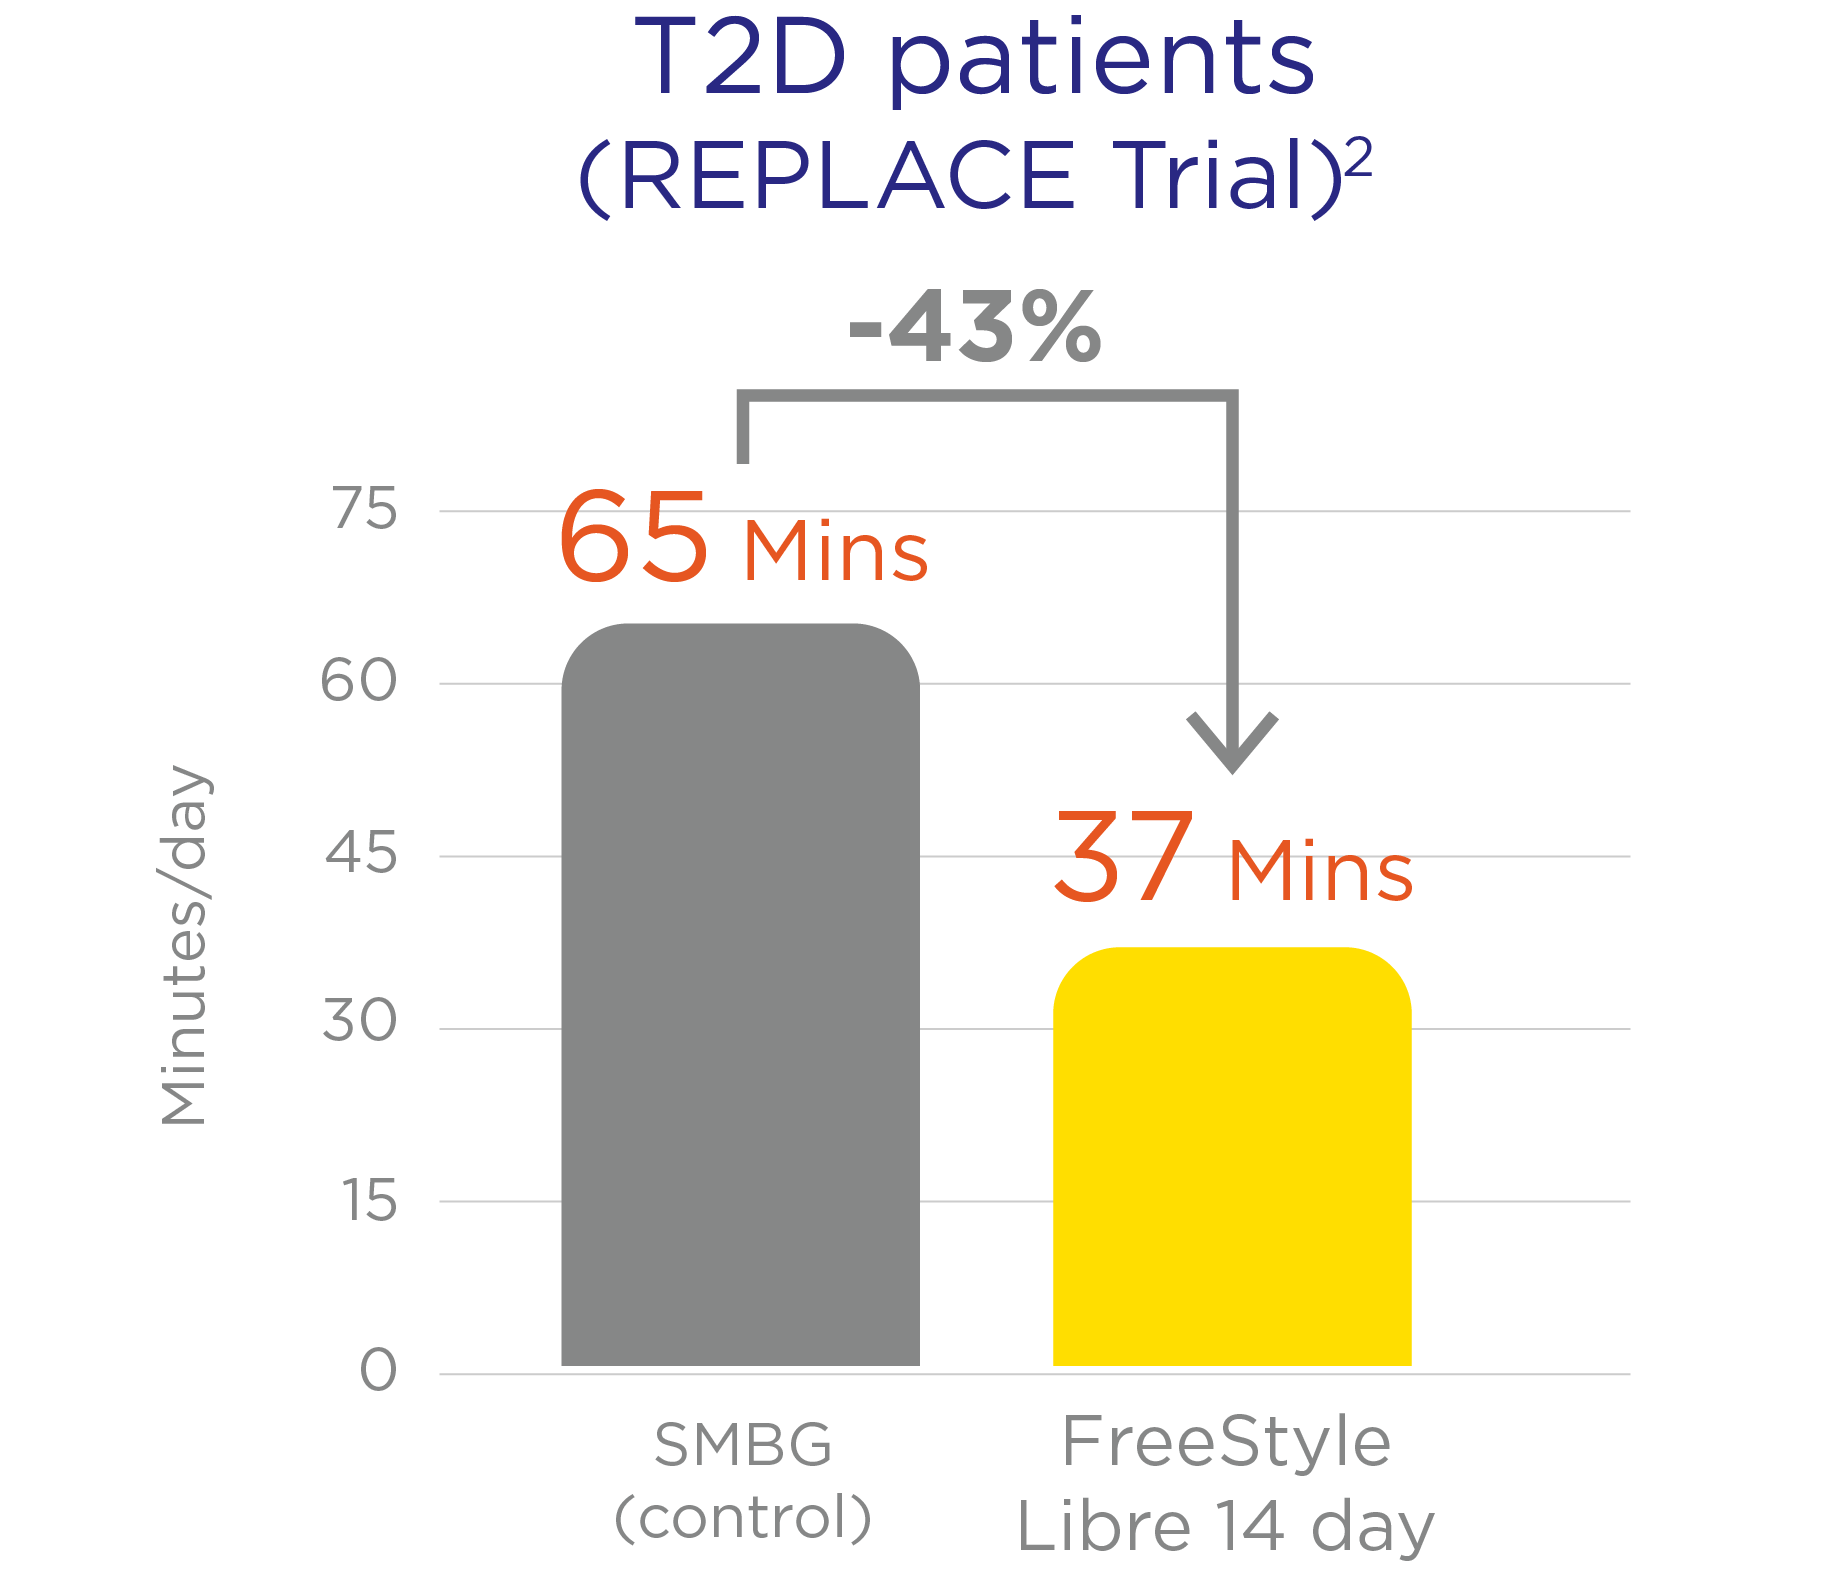 Reduction of time in hypoglycemia with FreeStyle Libre system